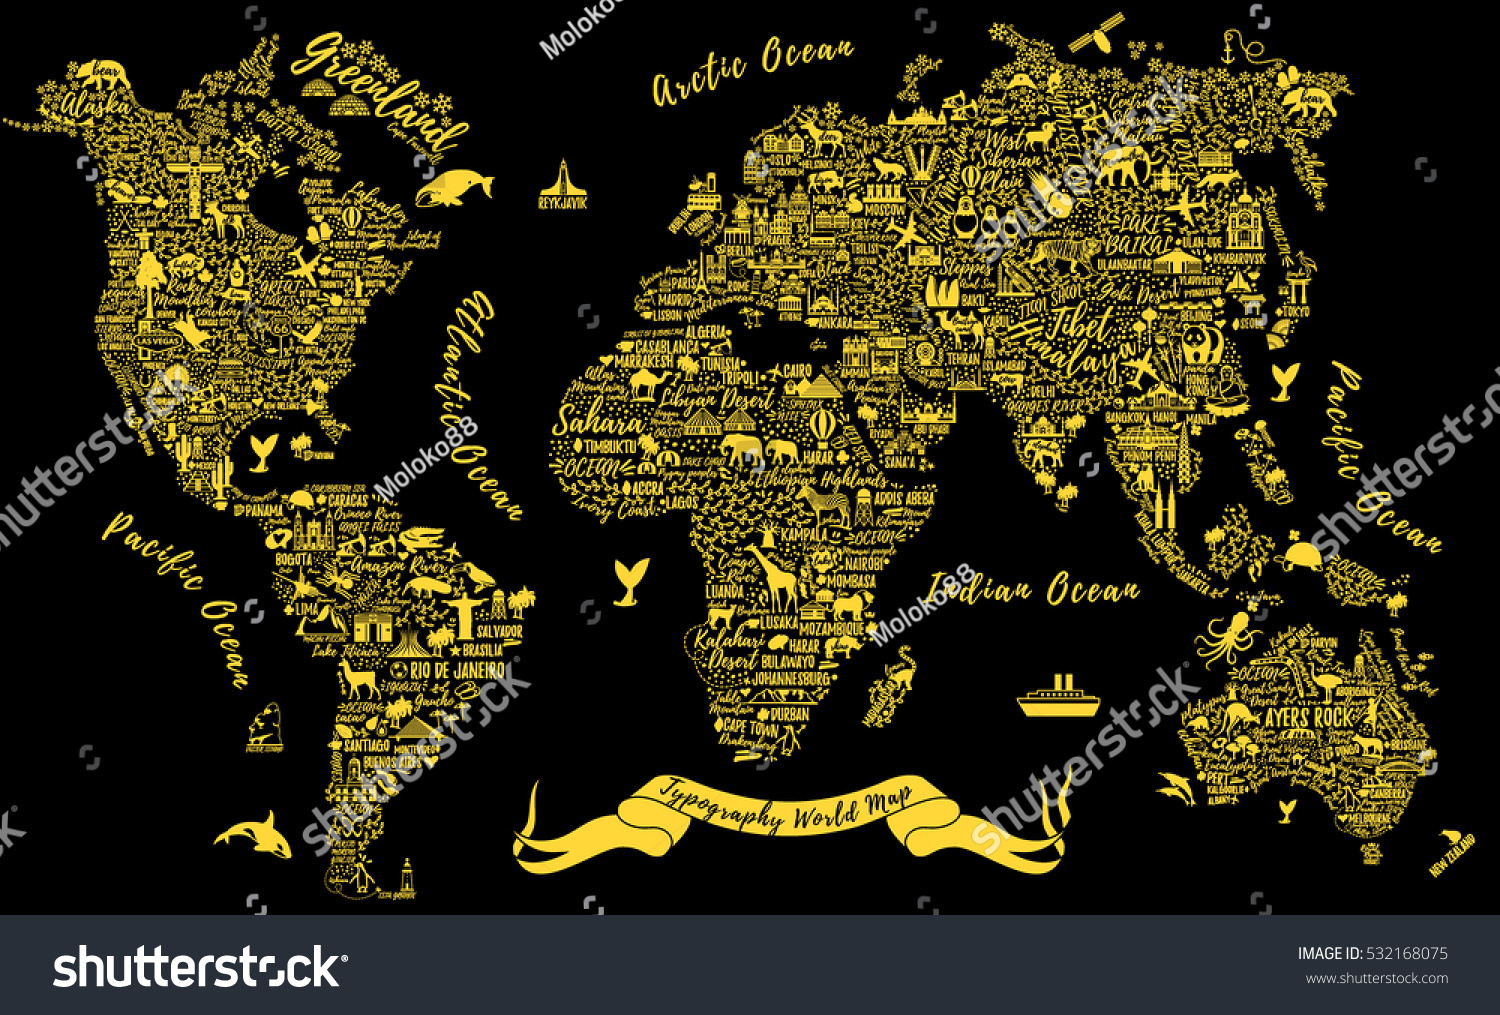 Typography world map travel poster cities vectores en stock typography world map travel poster with cities and sightseeing attractions inspirational vector illustration gumiabroncs Image collections